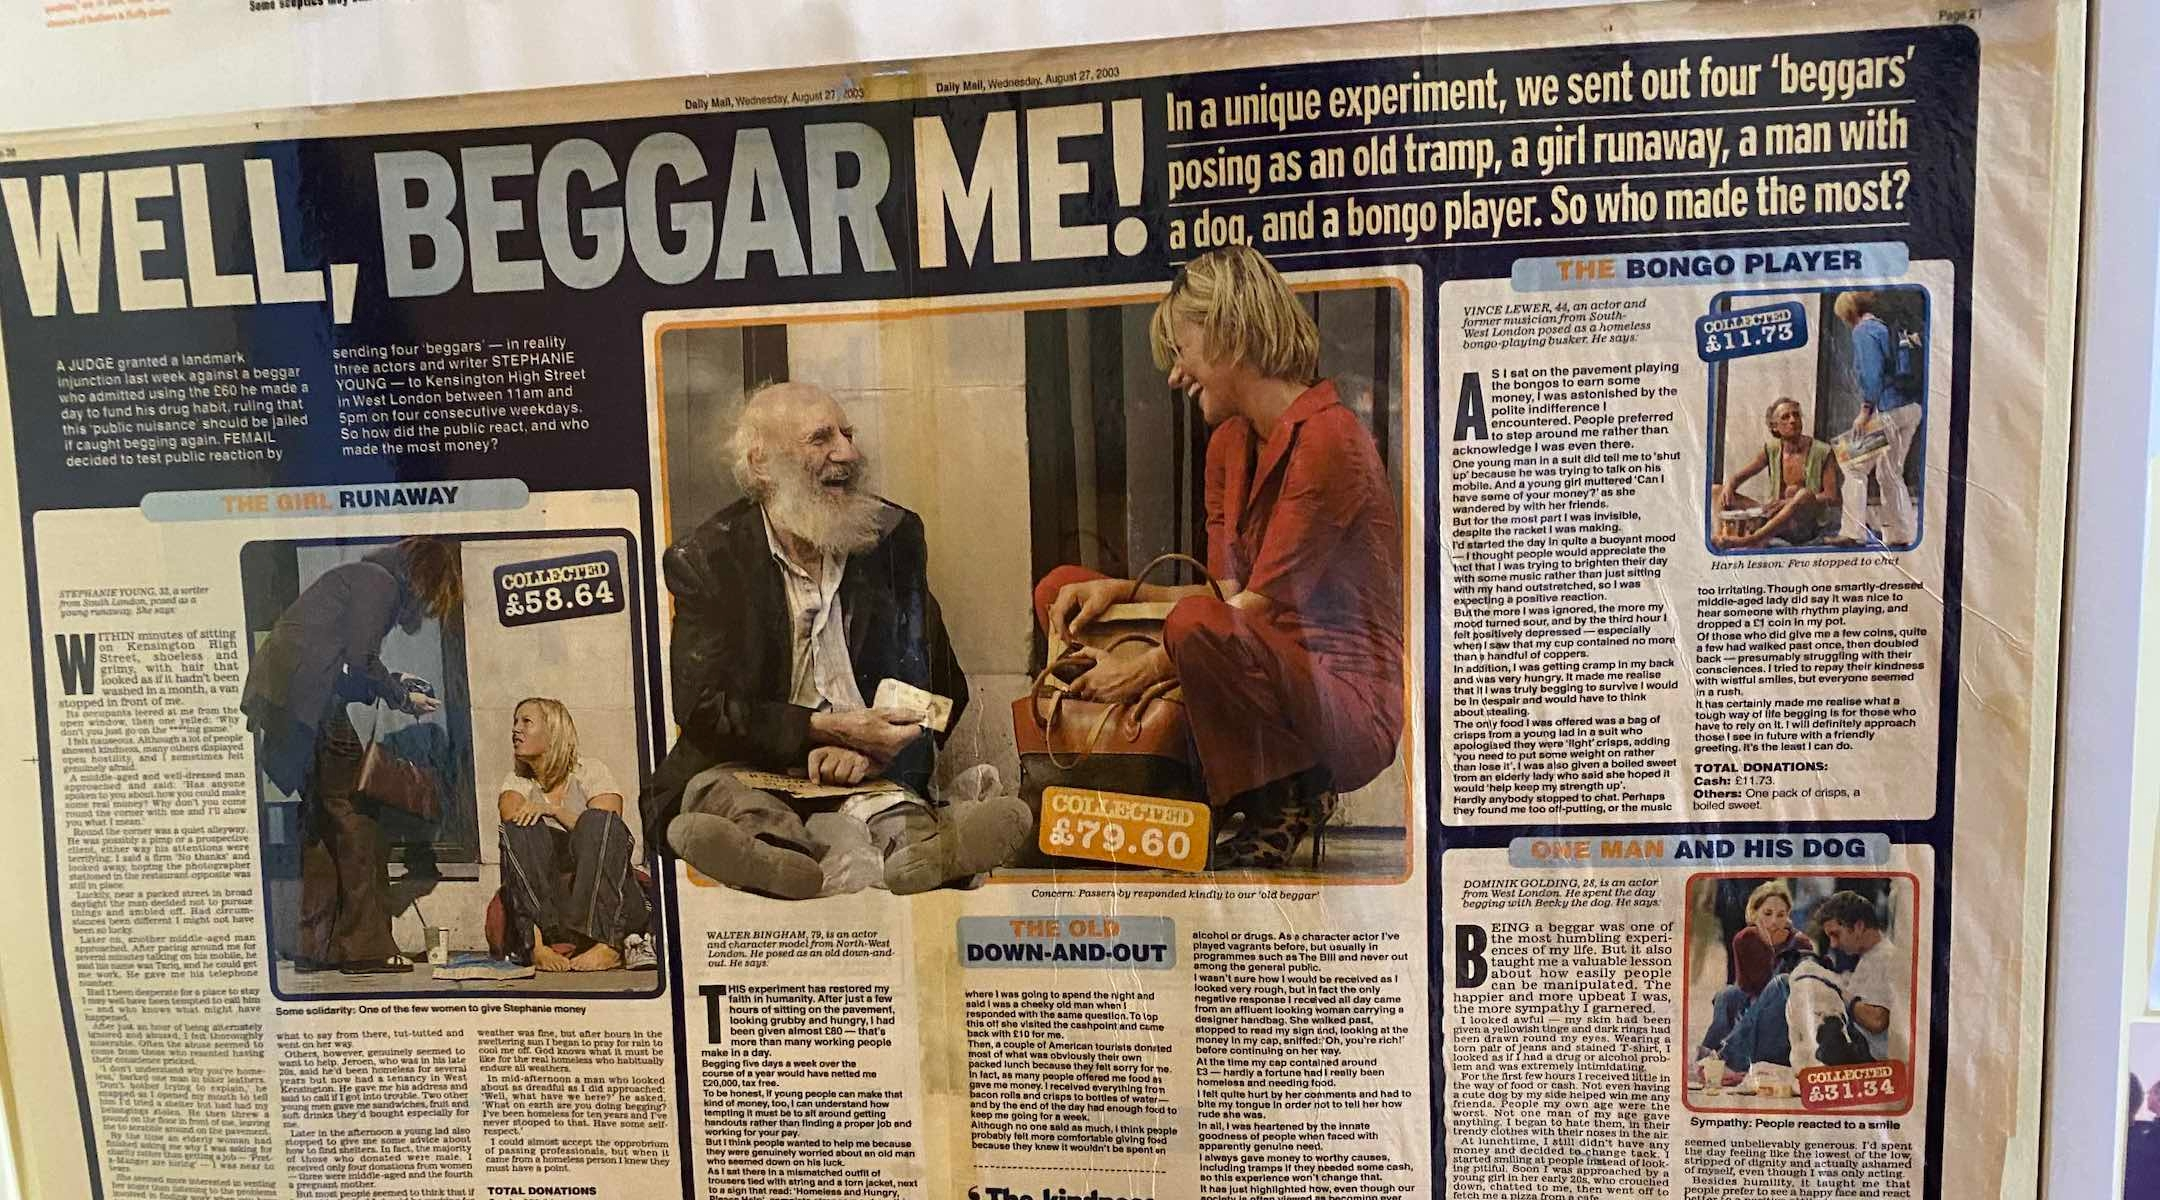 Bingham once impersonated a beggar on the street in London for a feature in the Daily Mail. (Sam Sokol)